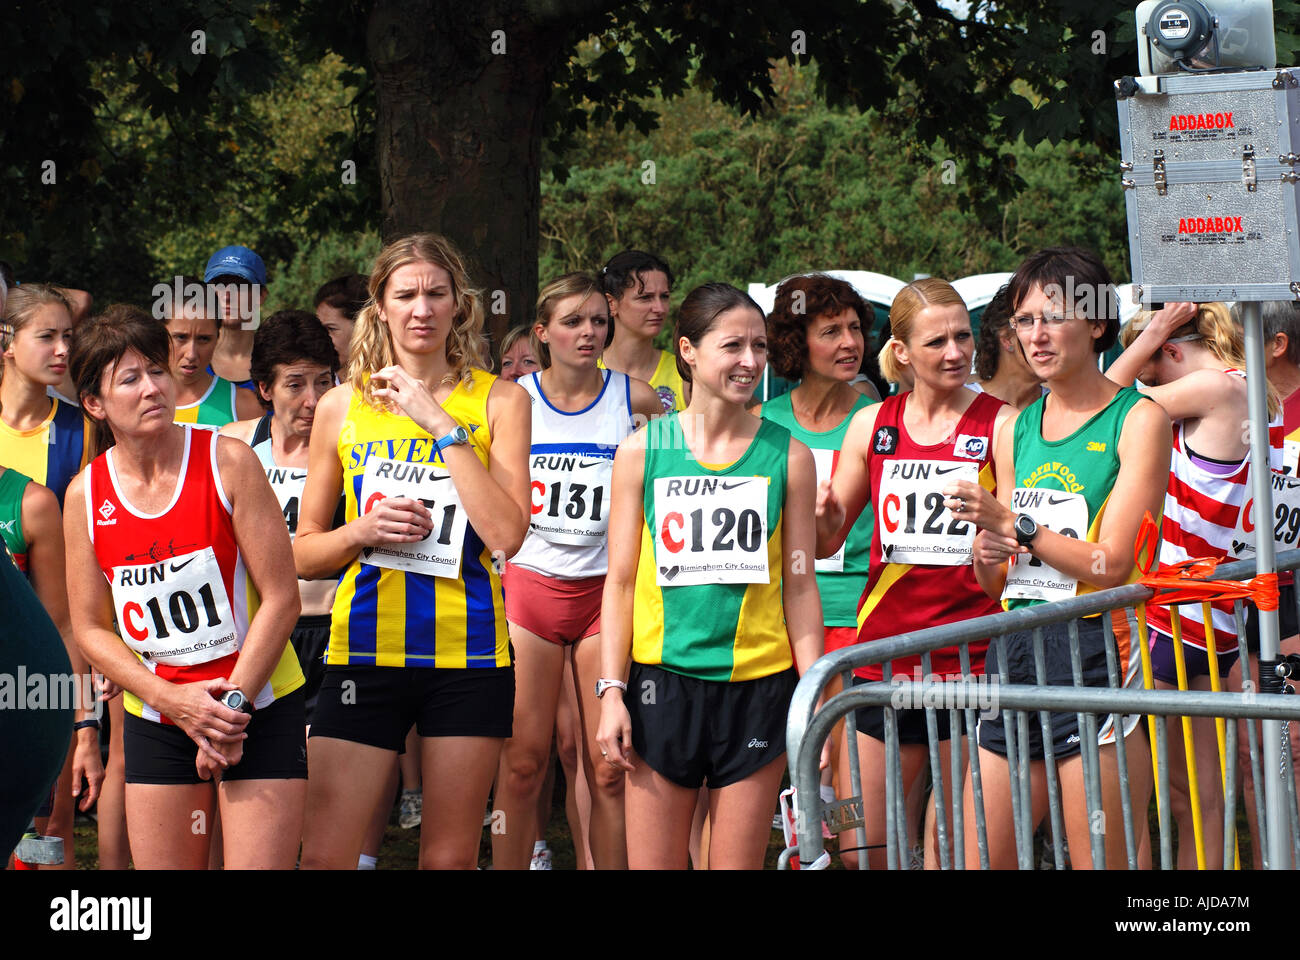 Women runners waiting to run in Midland 6 stage Road Relay race, Sutton Park, West Midlands, England, UK - Stock Image